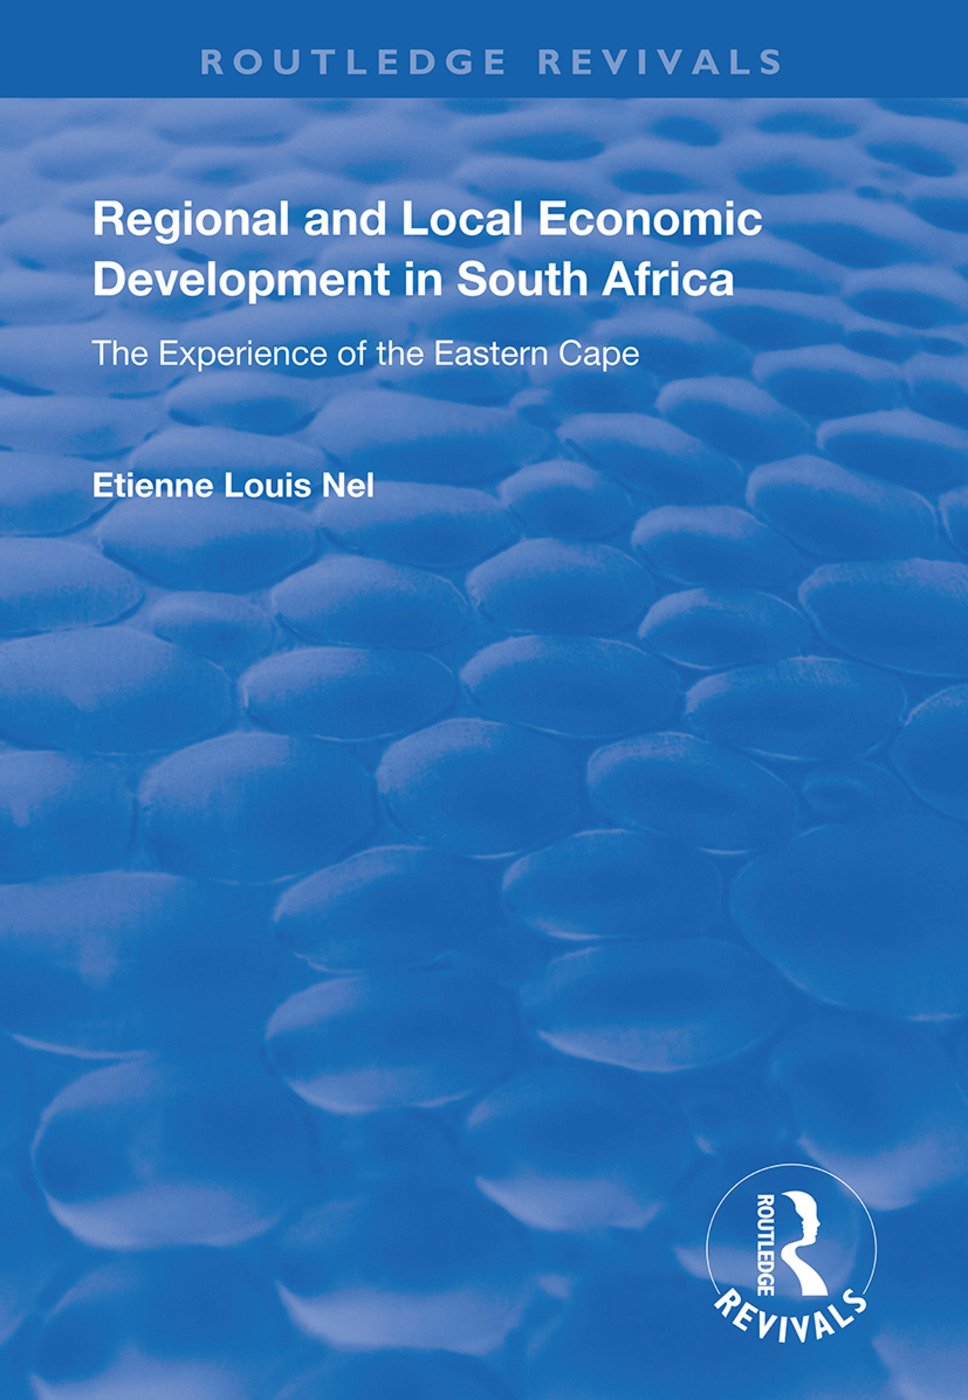 Regional and Local Economic Development in South Africa: The Experience of the Eastern Cape book cover